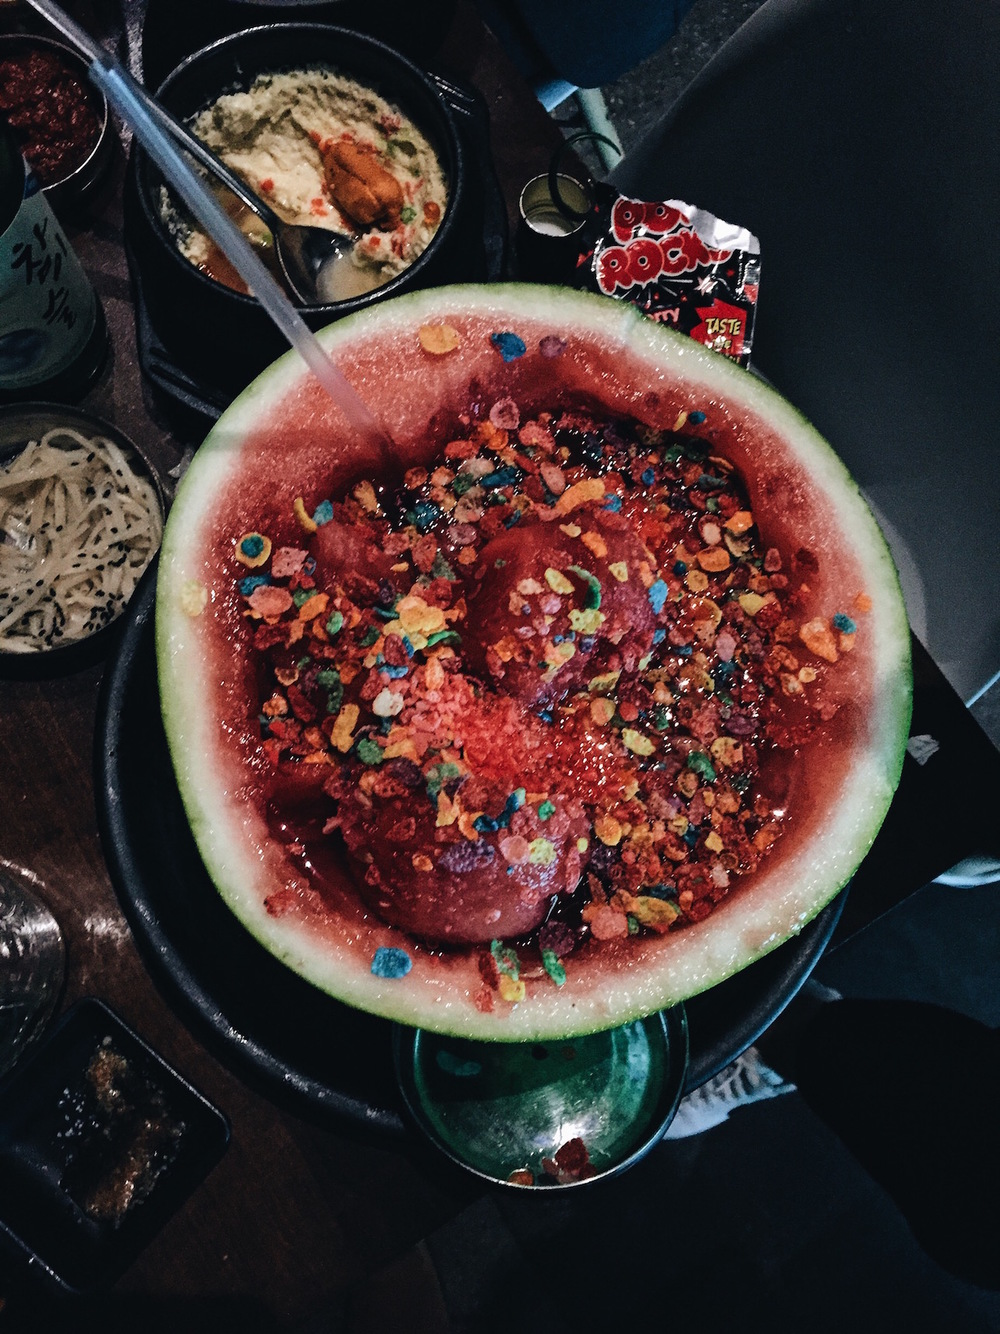 4. Watermelon Poprocks Soju